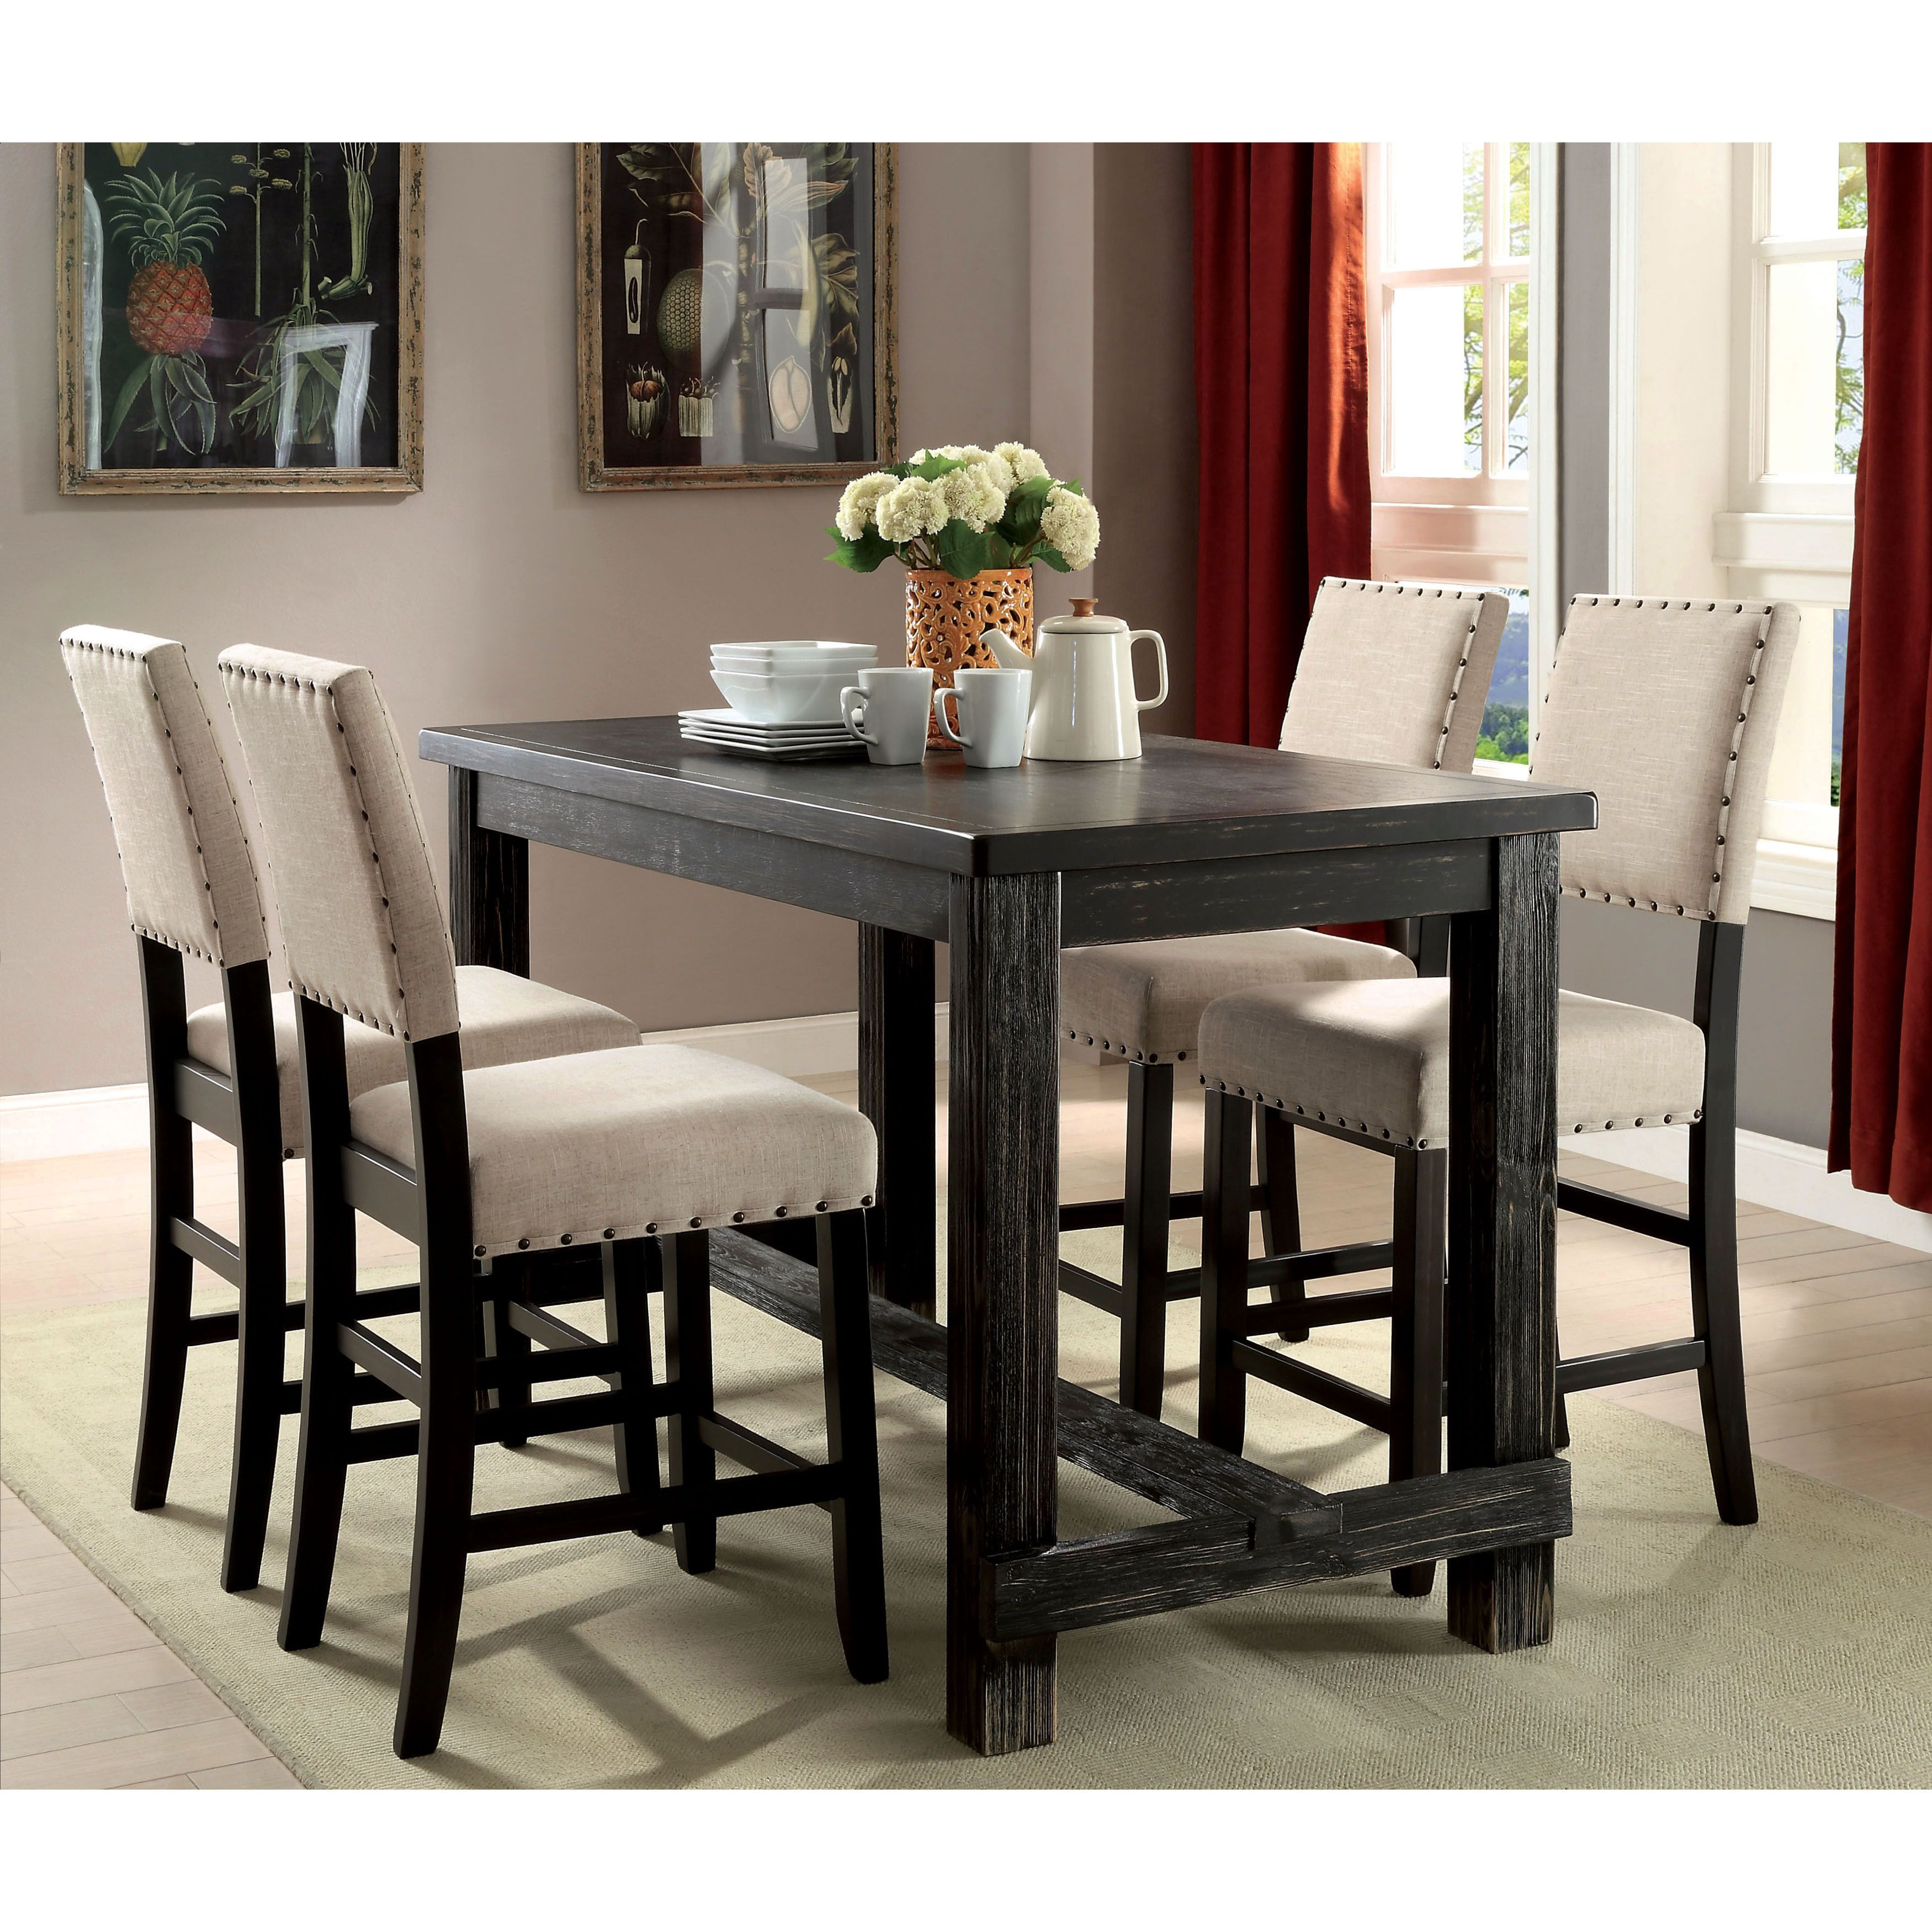 Overstock Com Online Shopping Bedding Furniture Electronics Jewelry Clothing More Counter Height Dining Table Dining Table In Kitchen Dining Room Sets